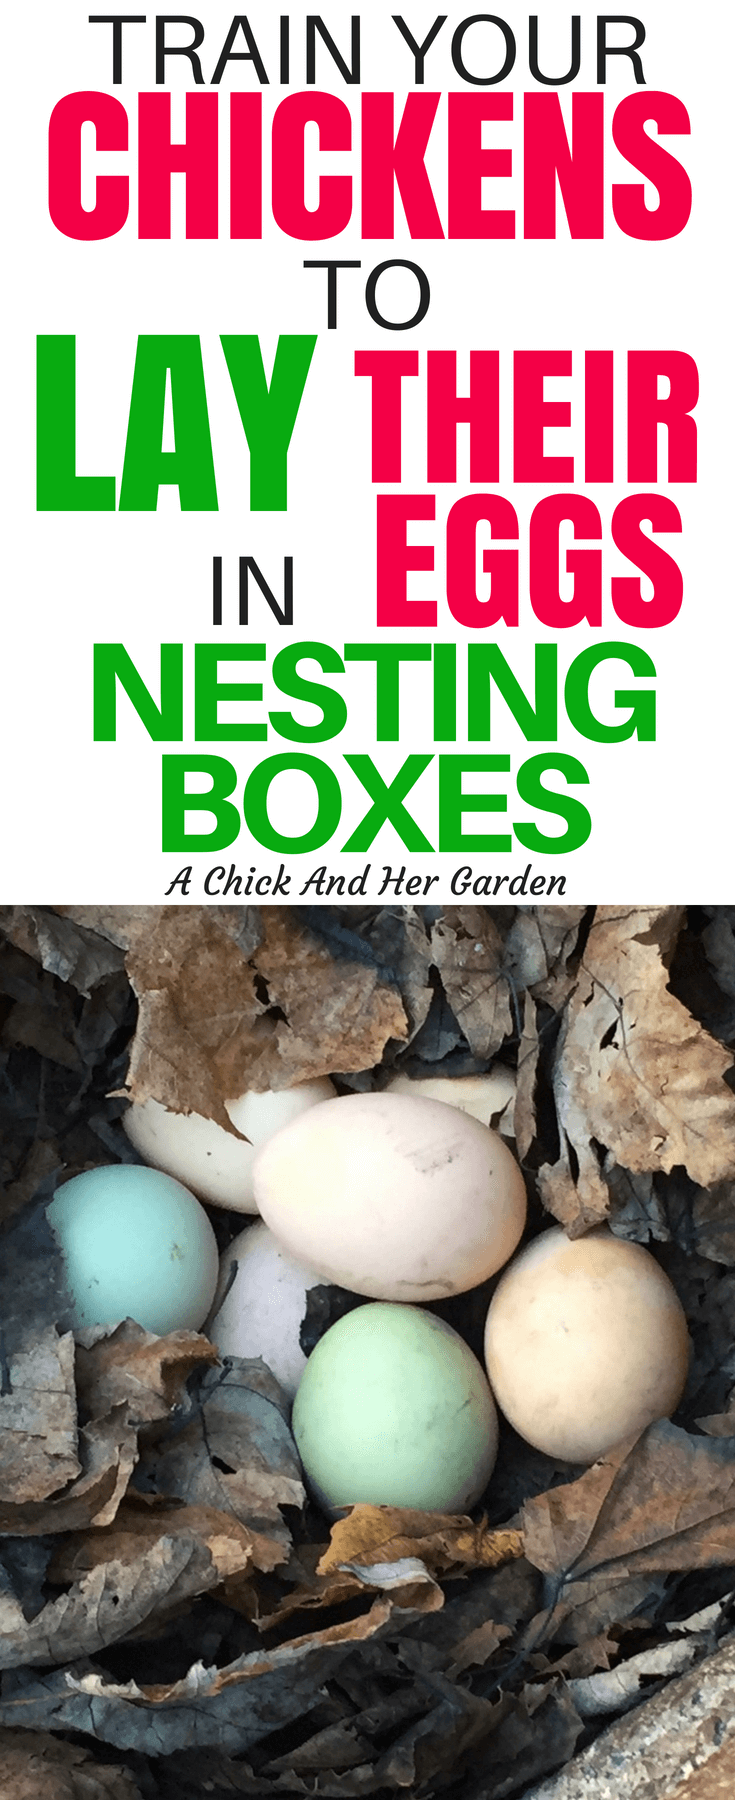 Finding eggs all over your yard in hidden nests is fun for about a day. These two steps will train your chickens to lay in nesting boxes! #chickens #backyardchickens #raisingchickens #homesteading #selfsufficiency #achickhergarden